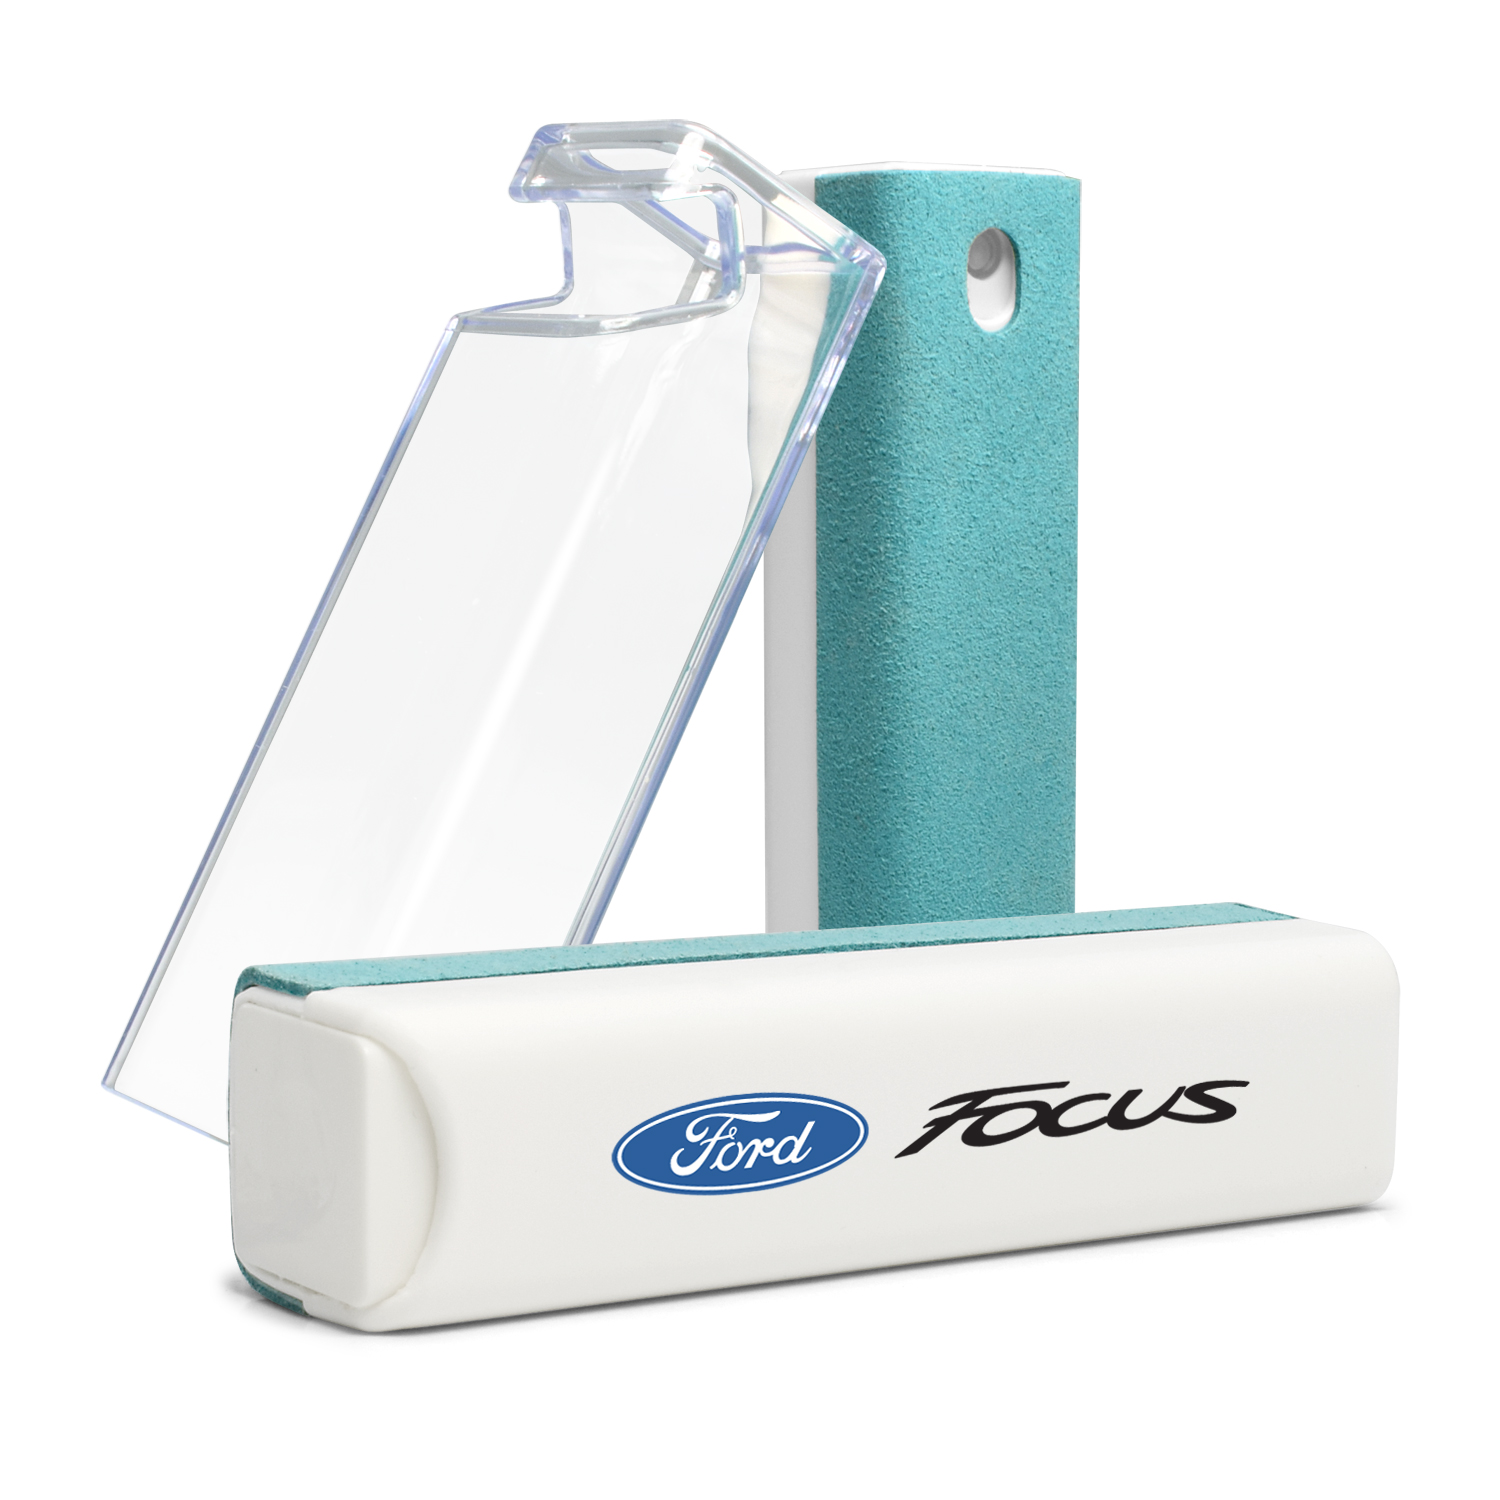 Ford Focus Blue Microfiber Screen Cleaner for Car Navigation, Cell Phone